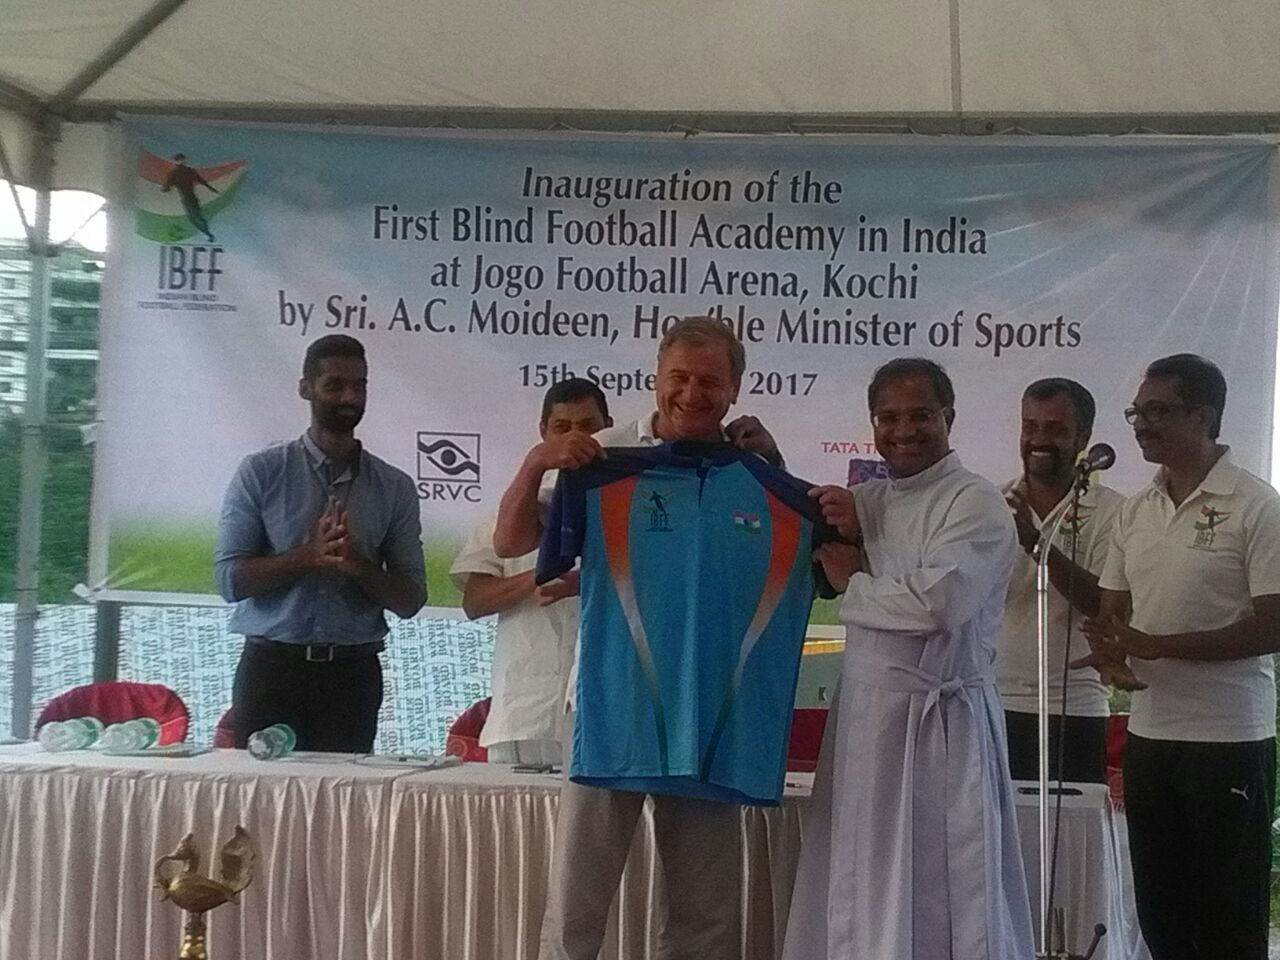 Ulrich Pfisterer presenting new indian team jersey